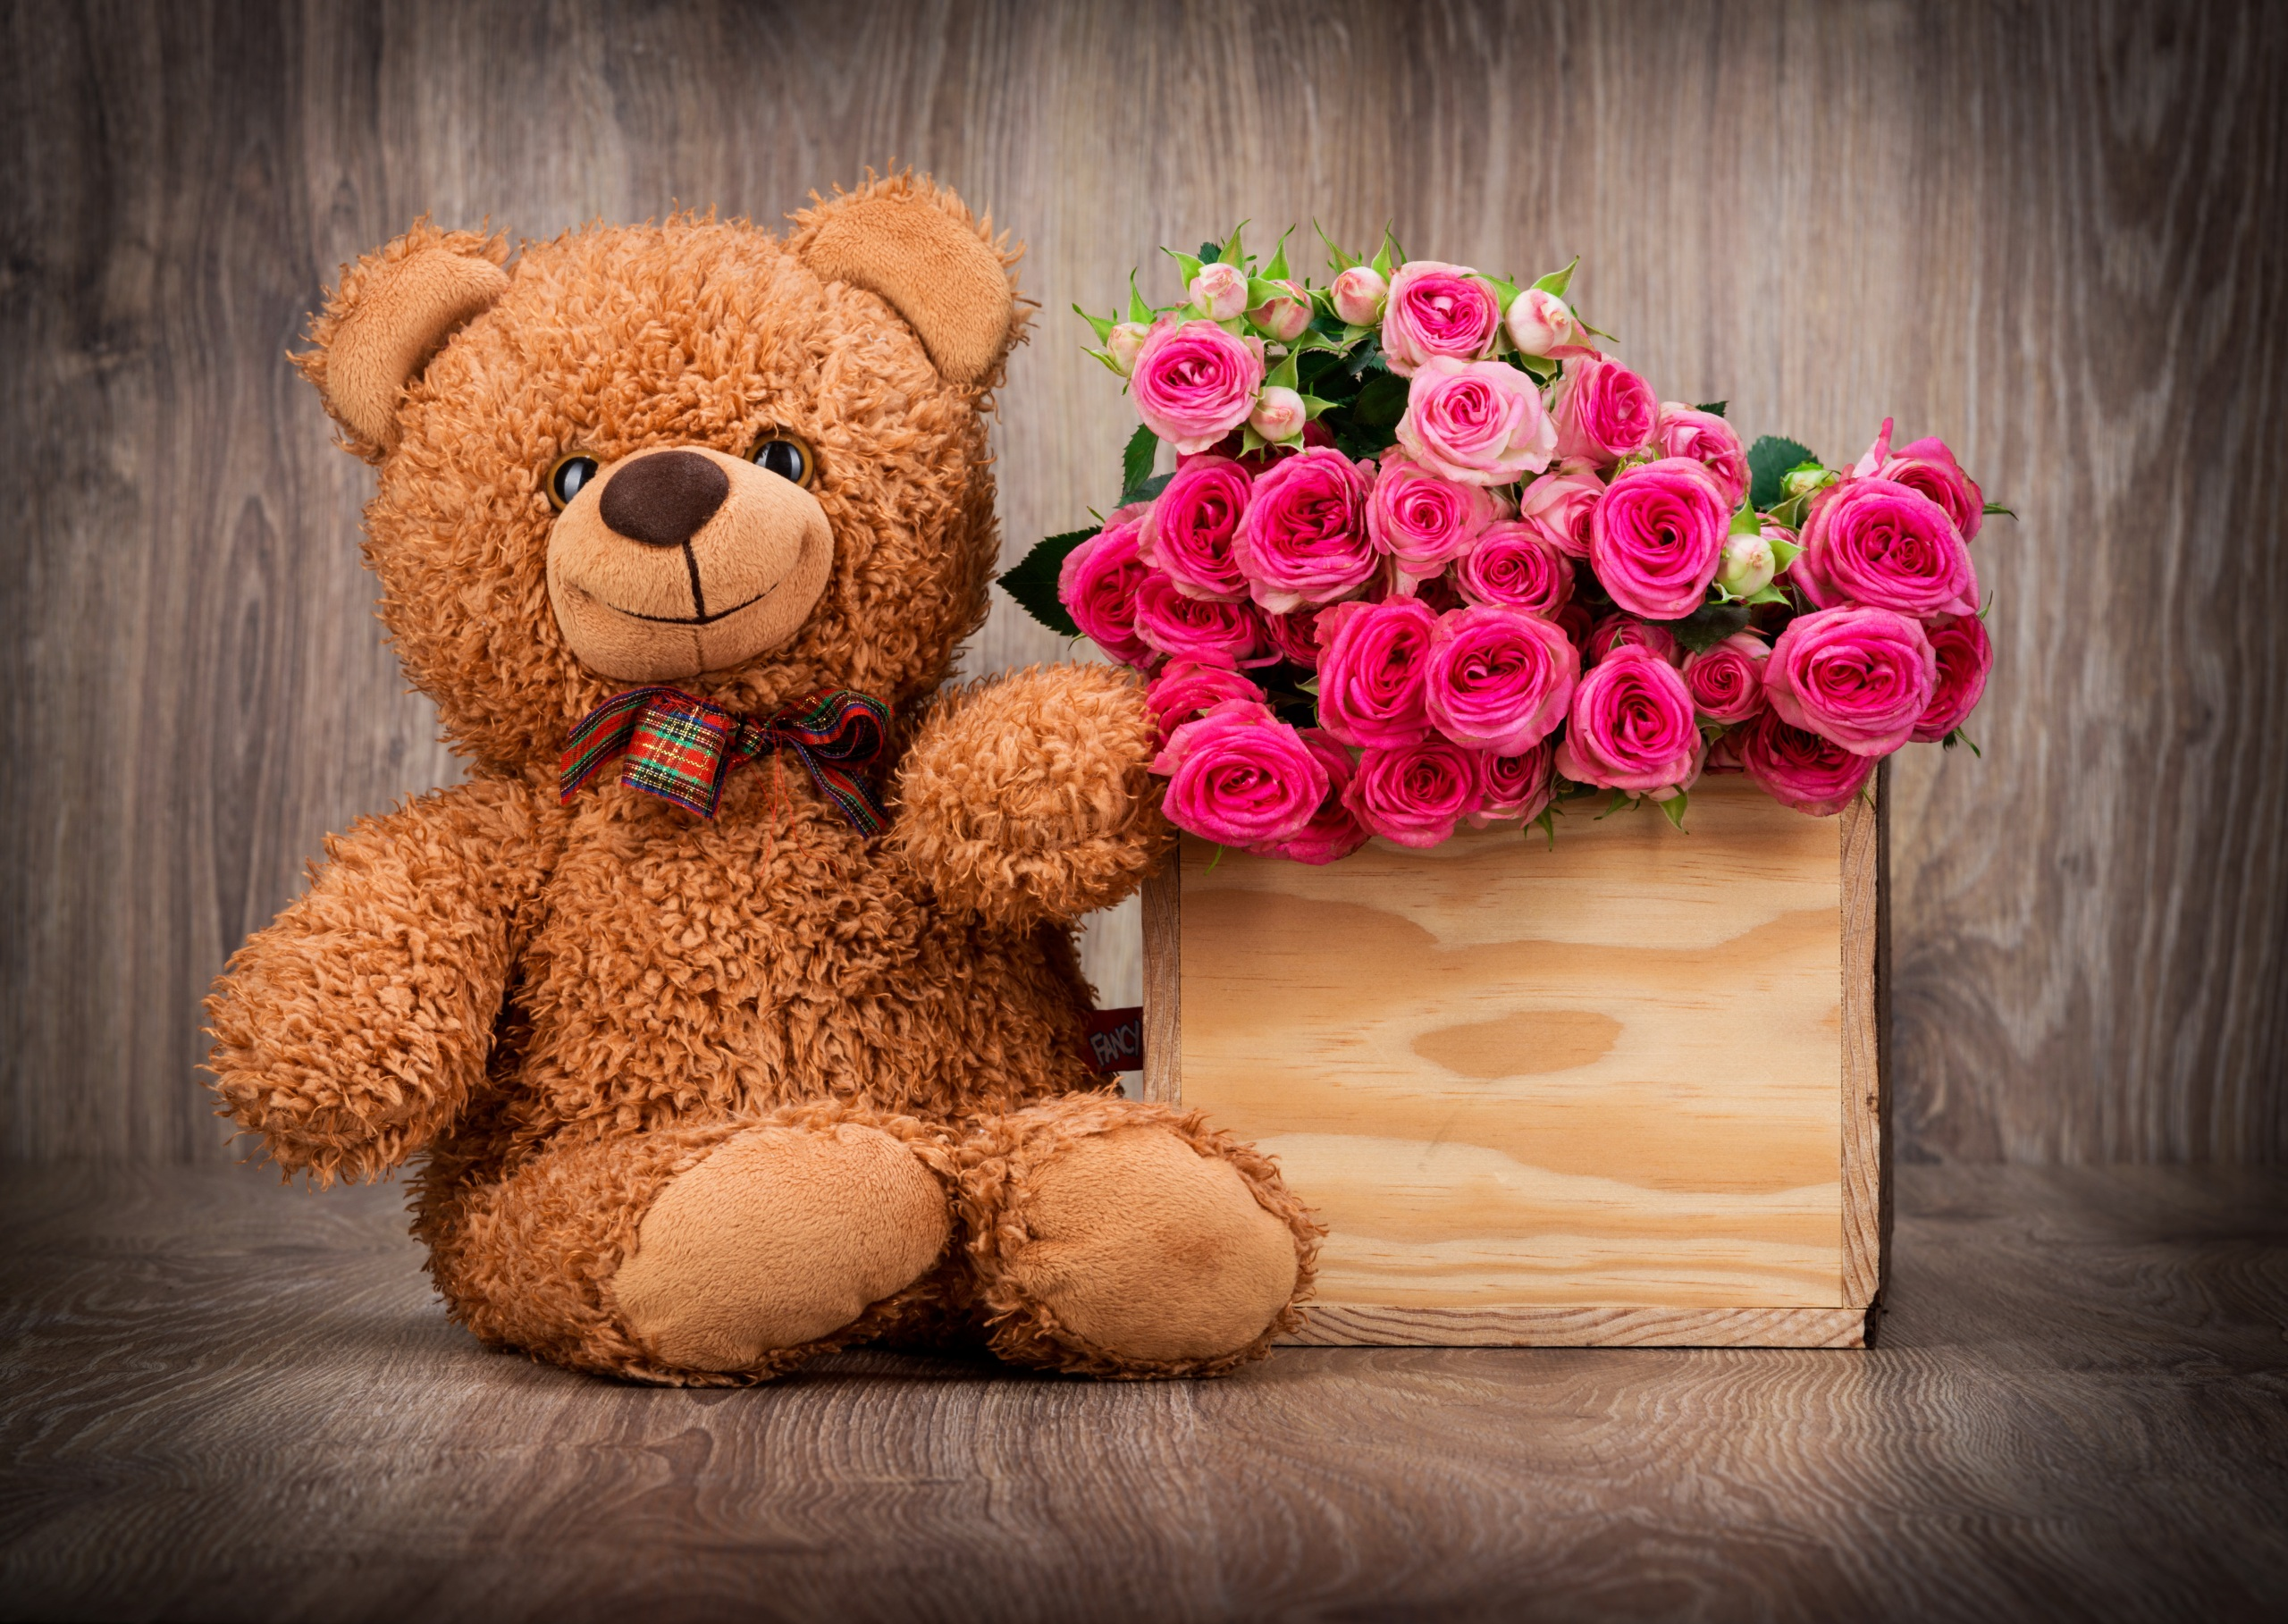 Cute Teddy Bear Wallpaper with Pink Roses in Box | HD Wallpapers